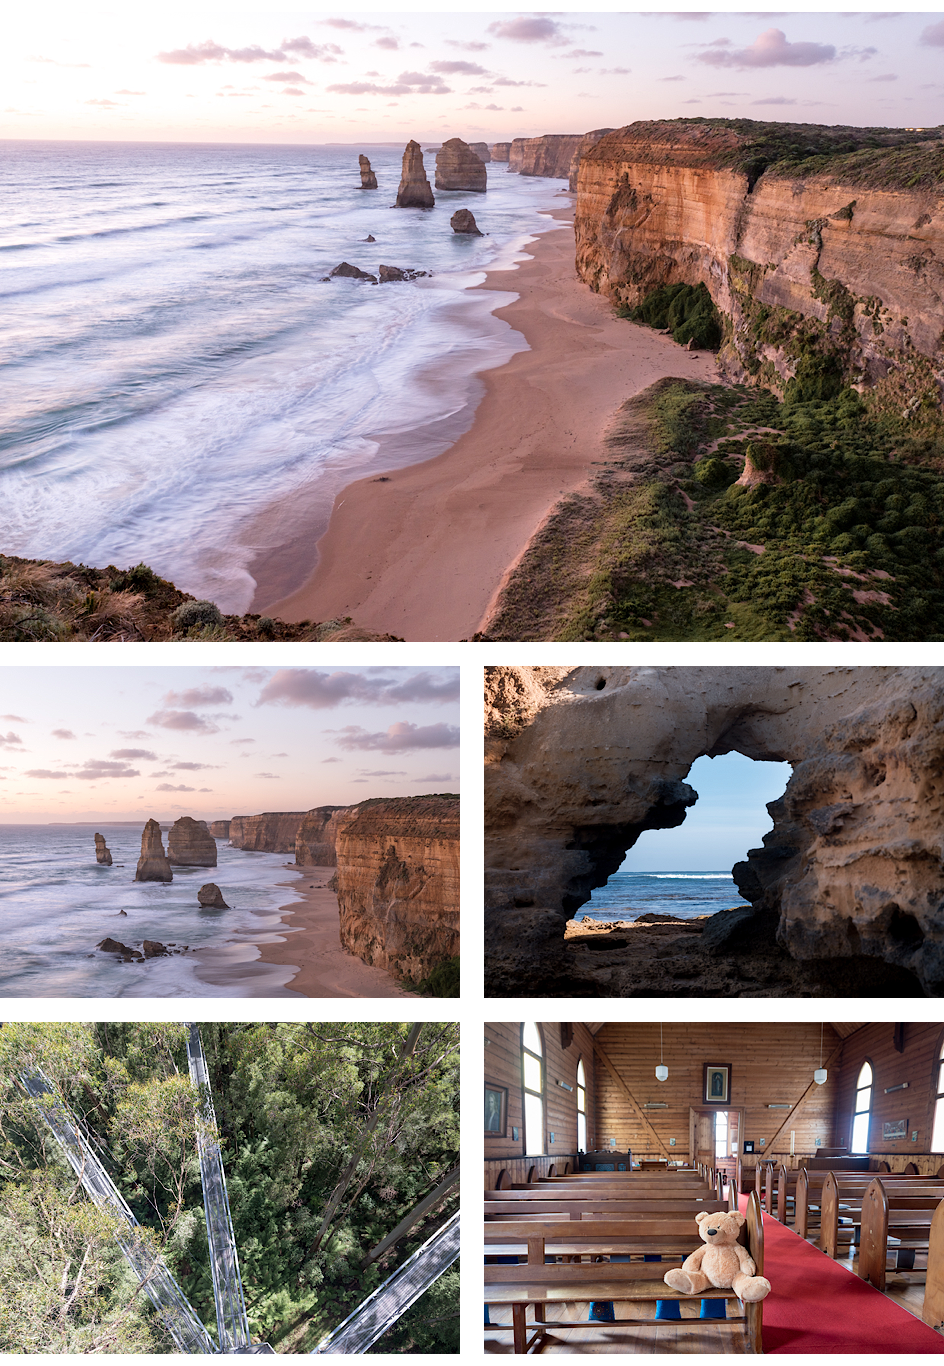 Twelve Apostles und Bay of Islands gelegen an der Great Ocean Road, Otway Fly Treetop Adventures, ein Teddy in einer Kirche